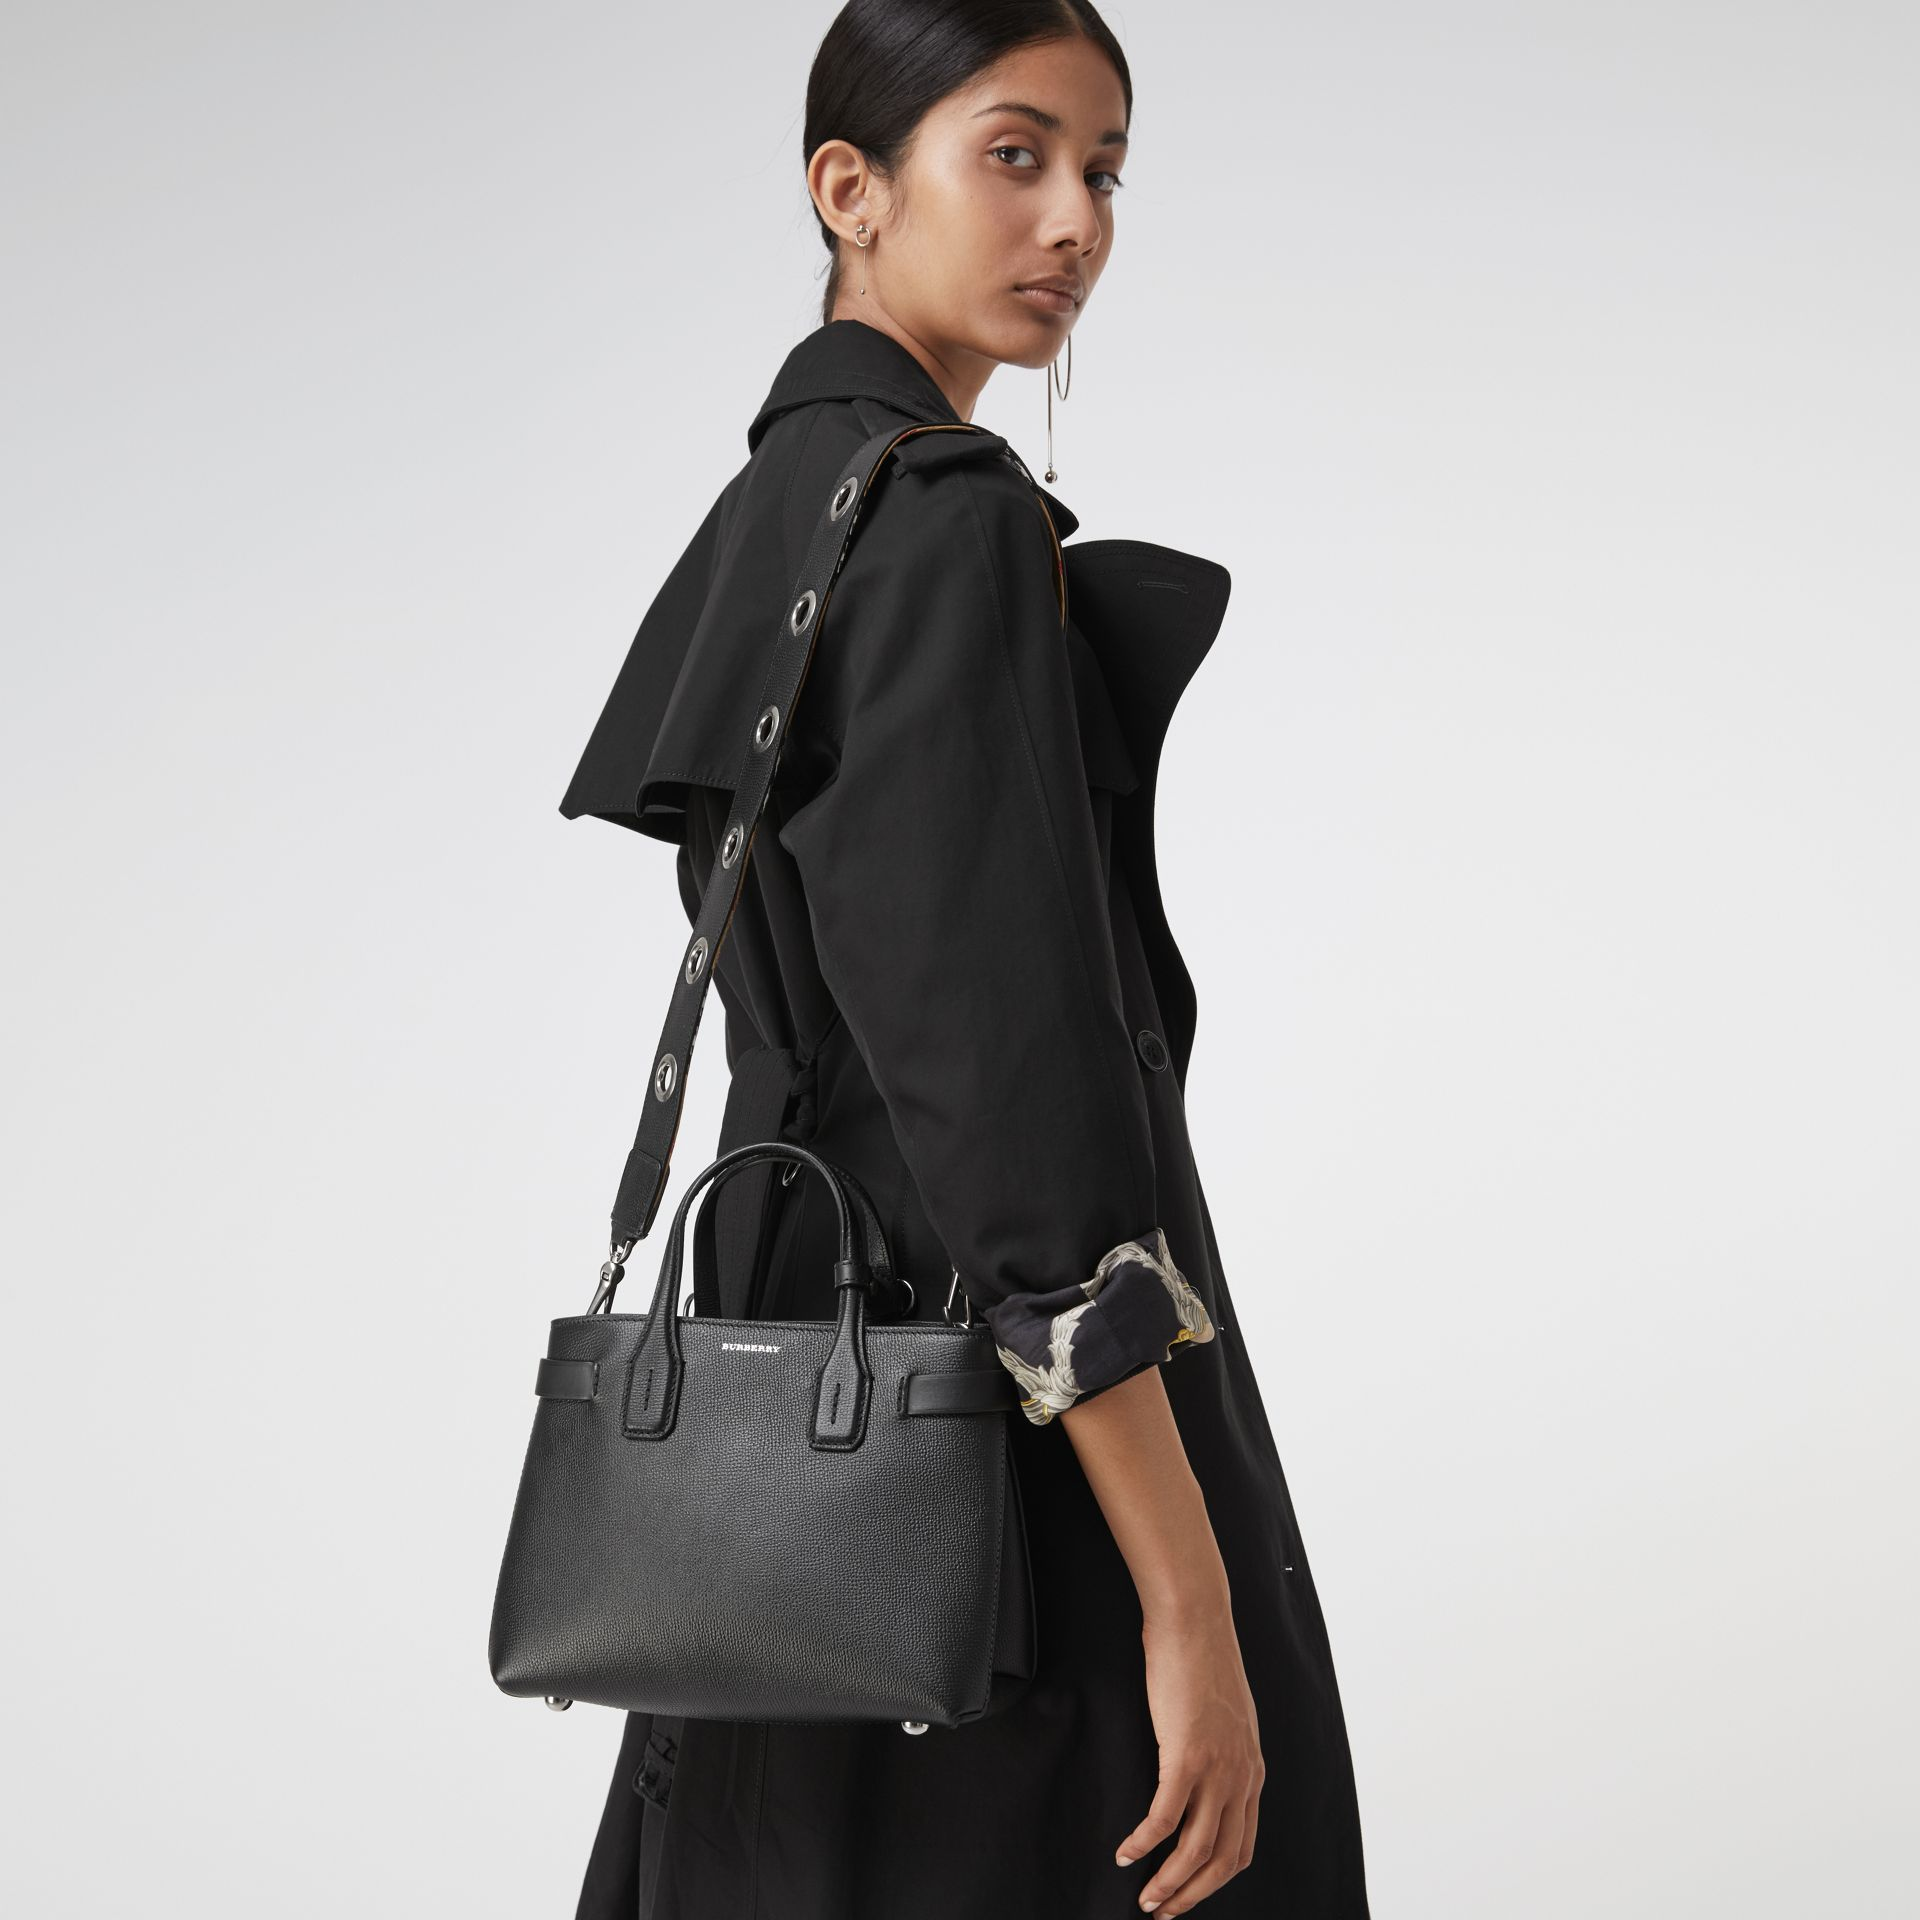 The Small Banner in Grainy Leather in Black - Women | Burberry United Kingdom - gallery image 3